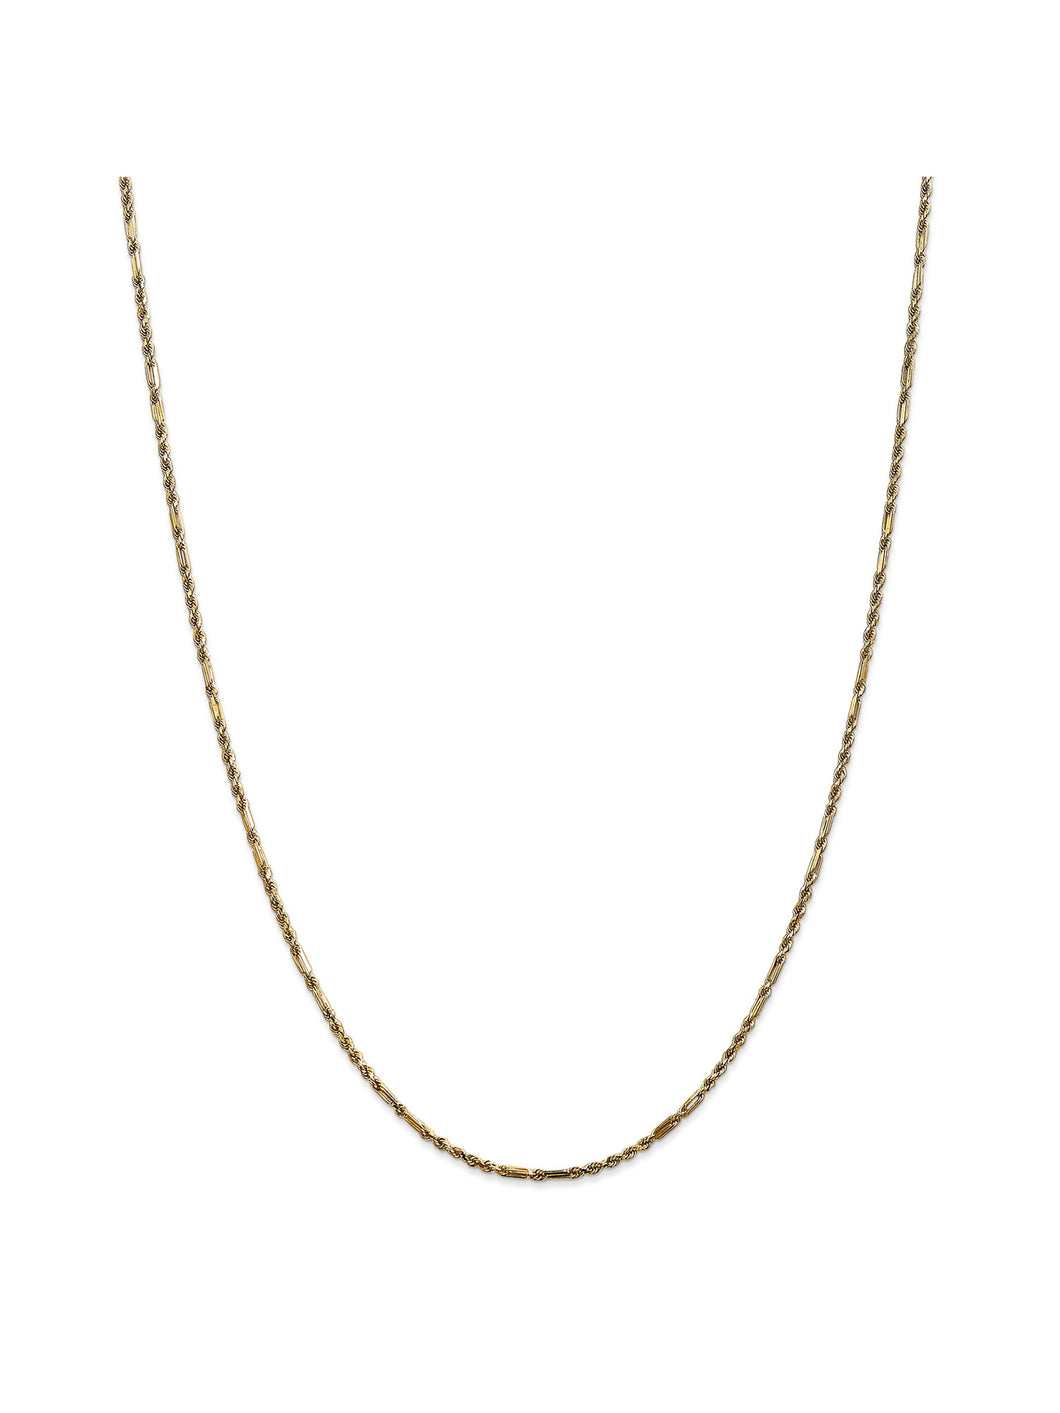 14k Yellow Gold 2mm Wide Milano Rope Chain Necklace